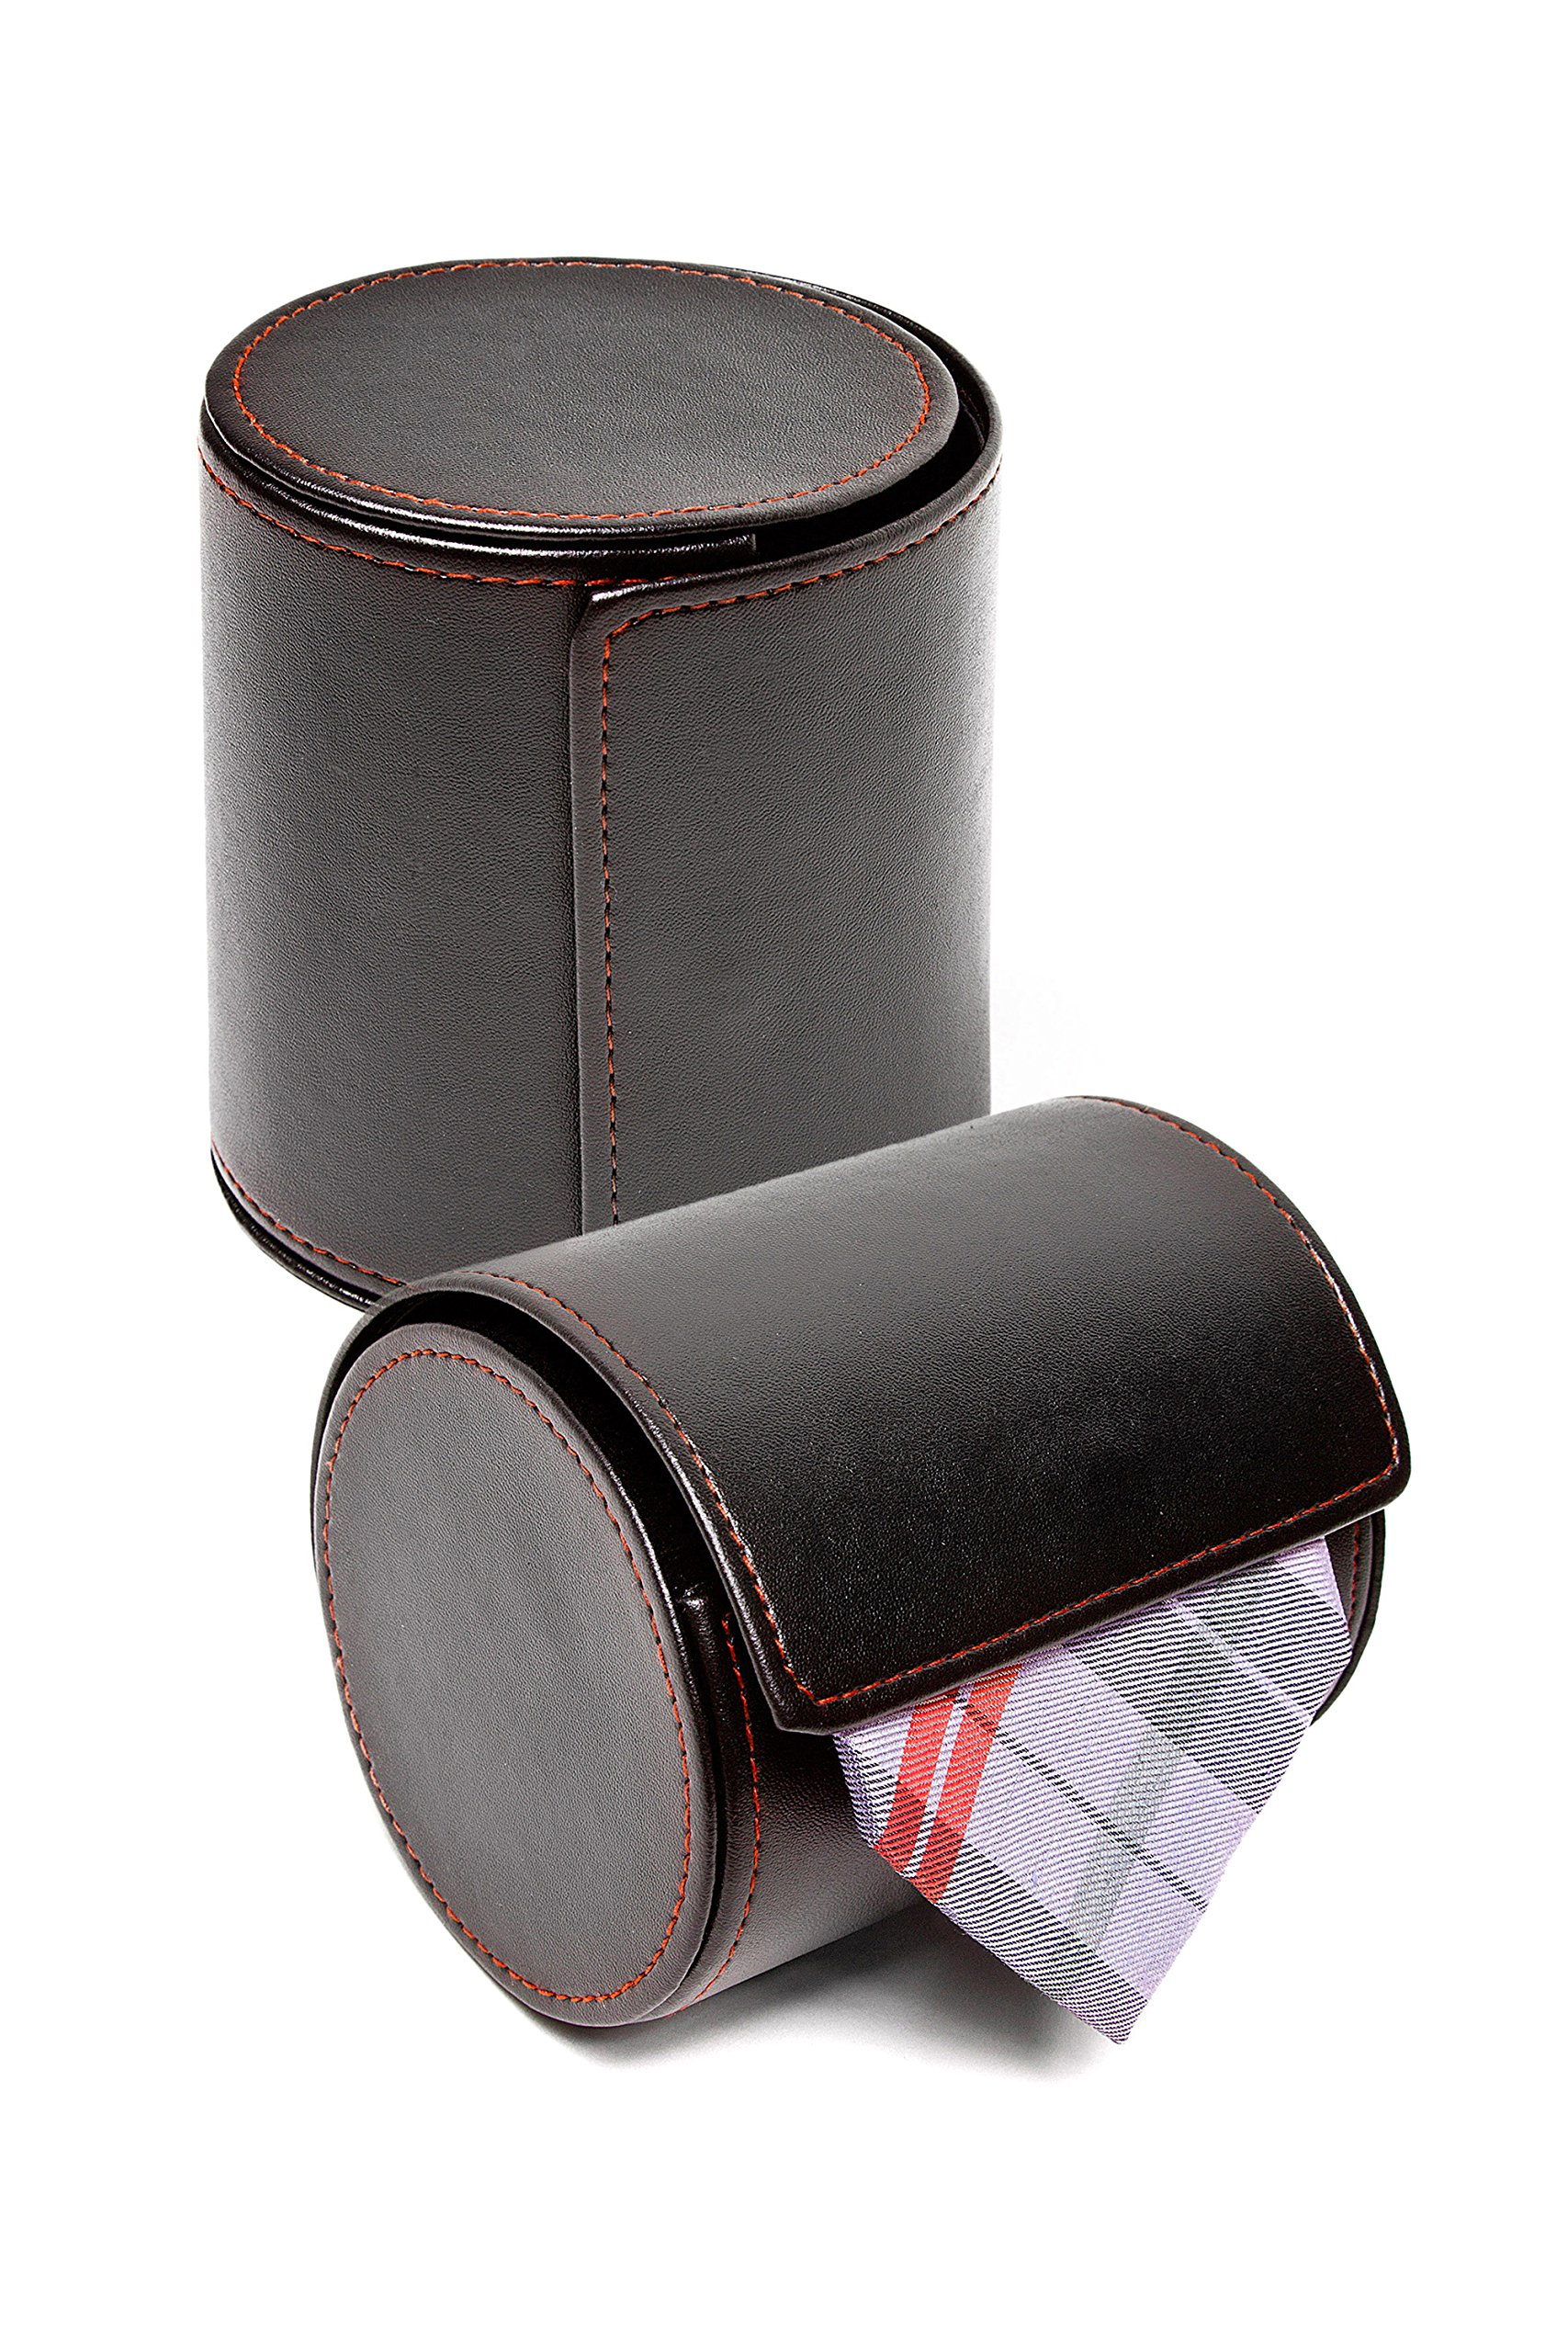 Black Tie Travel Case Roll - Perfect Business Gift - Vegan Faux Leather Necktie Anti-Wrinkle Storage Case